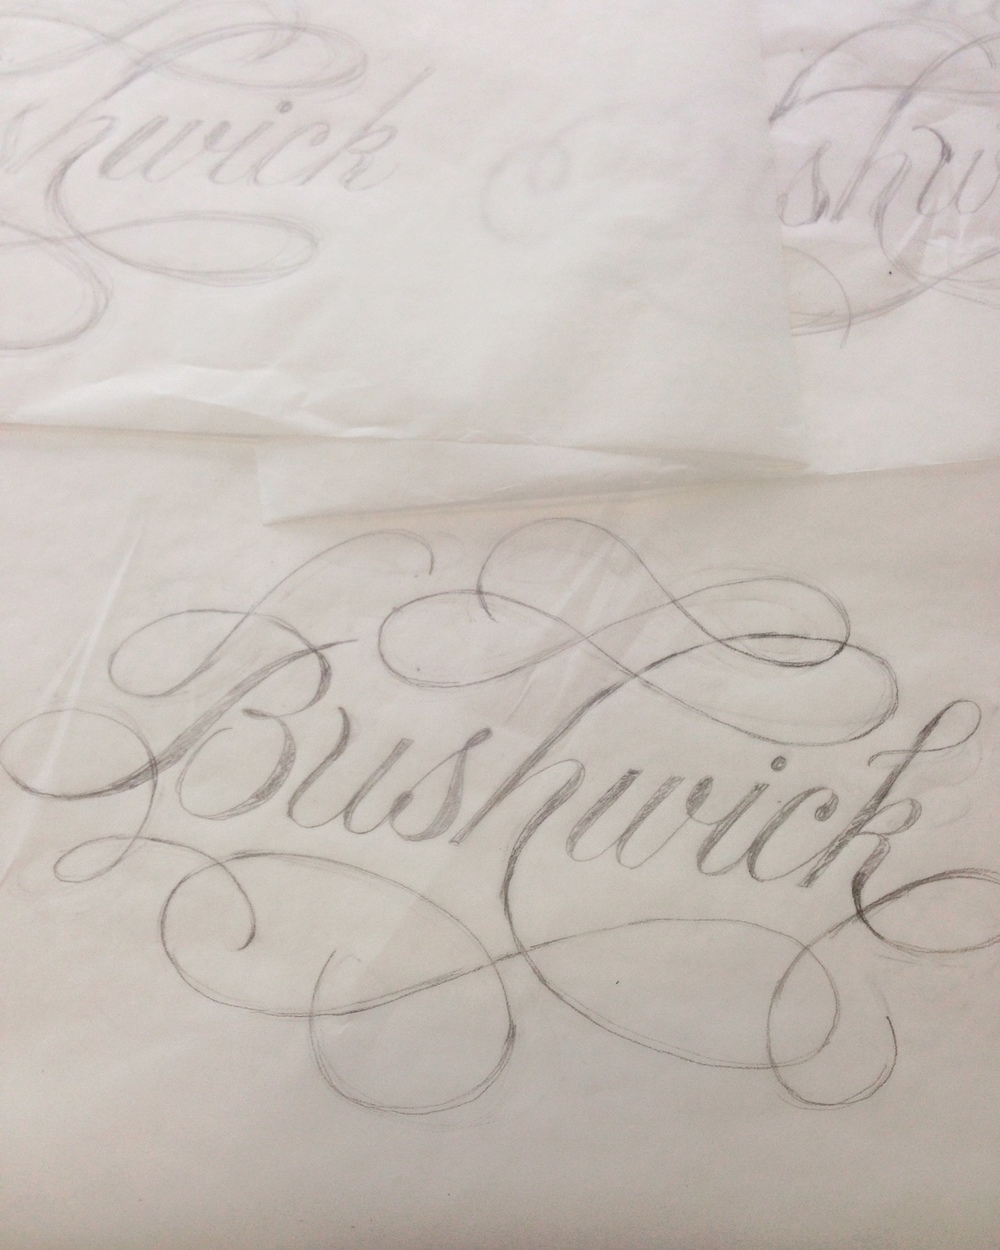 These are works in progress...working out the flourishing.